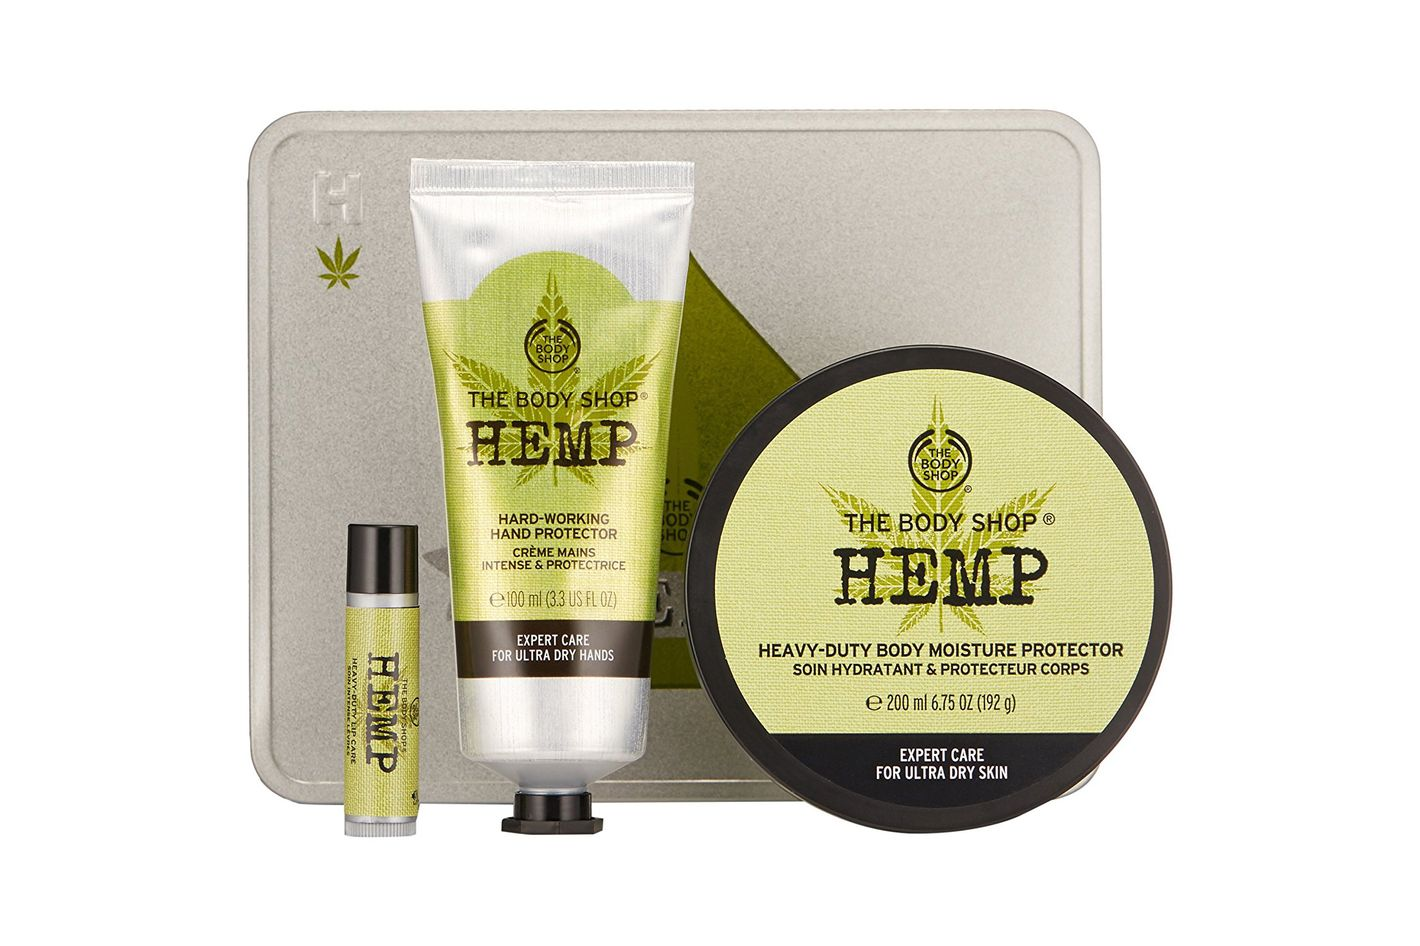 The Body Shop Hemp High Moisture Expert Set